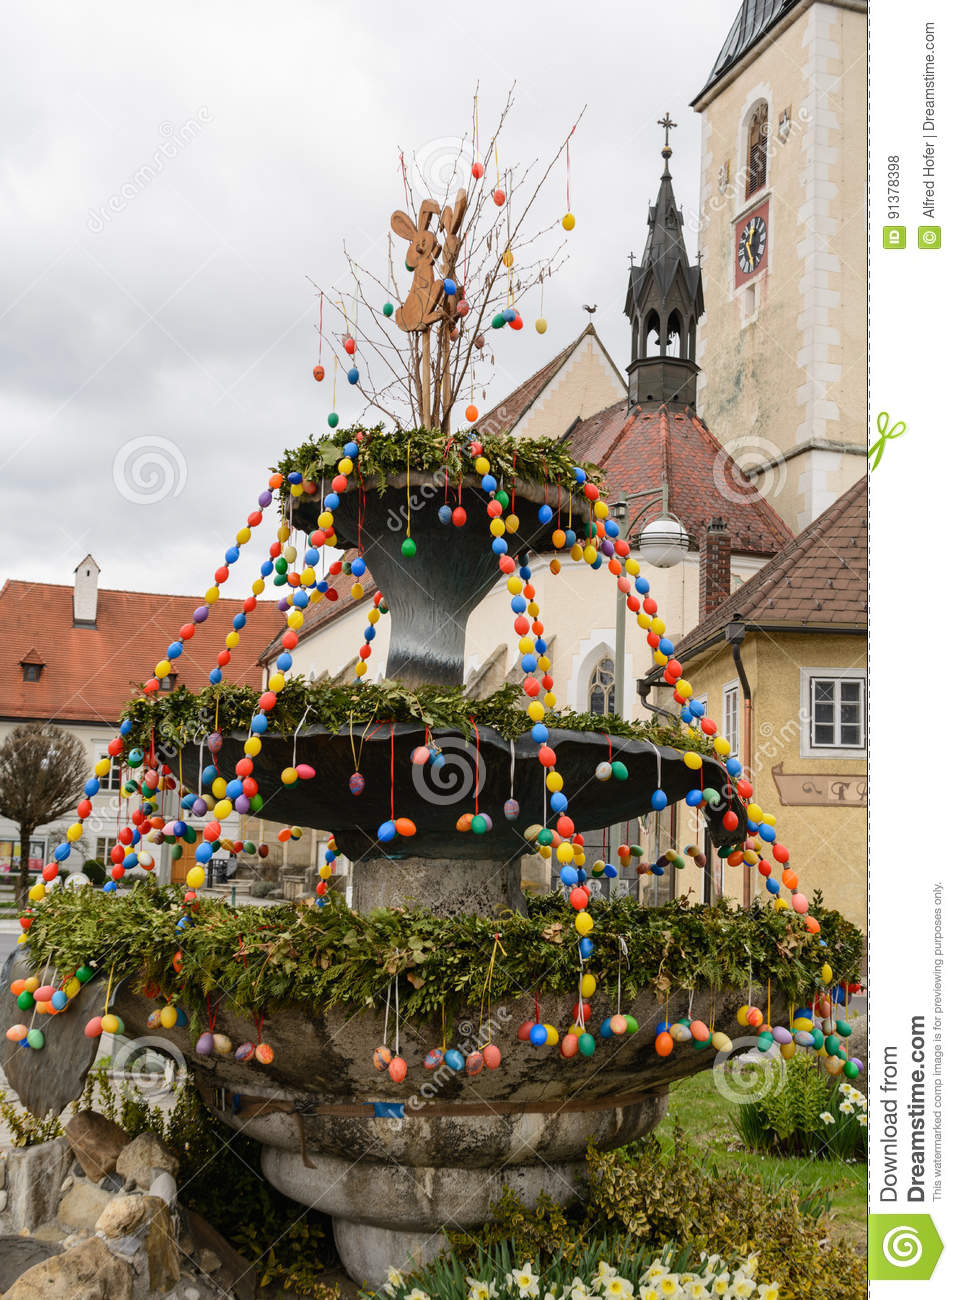 Colorful Easter decoration at the village square